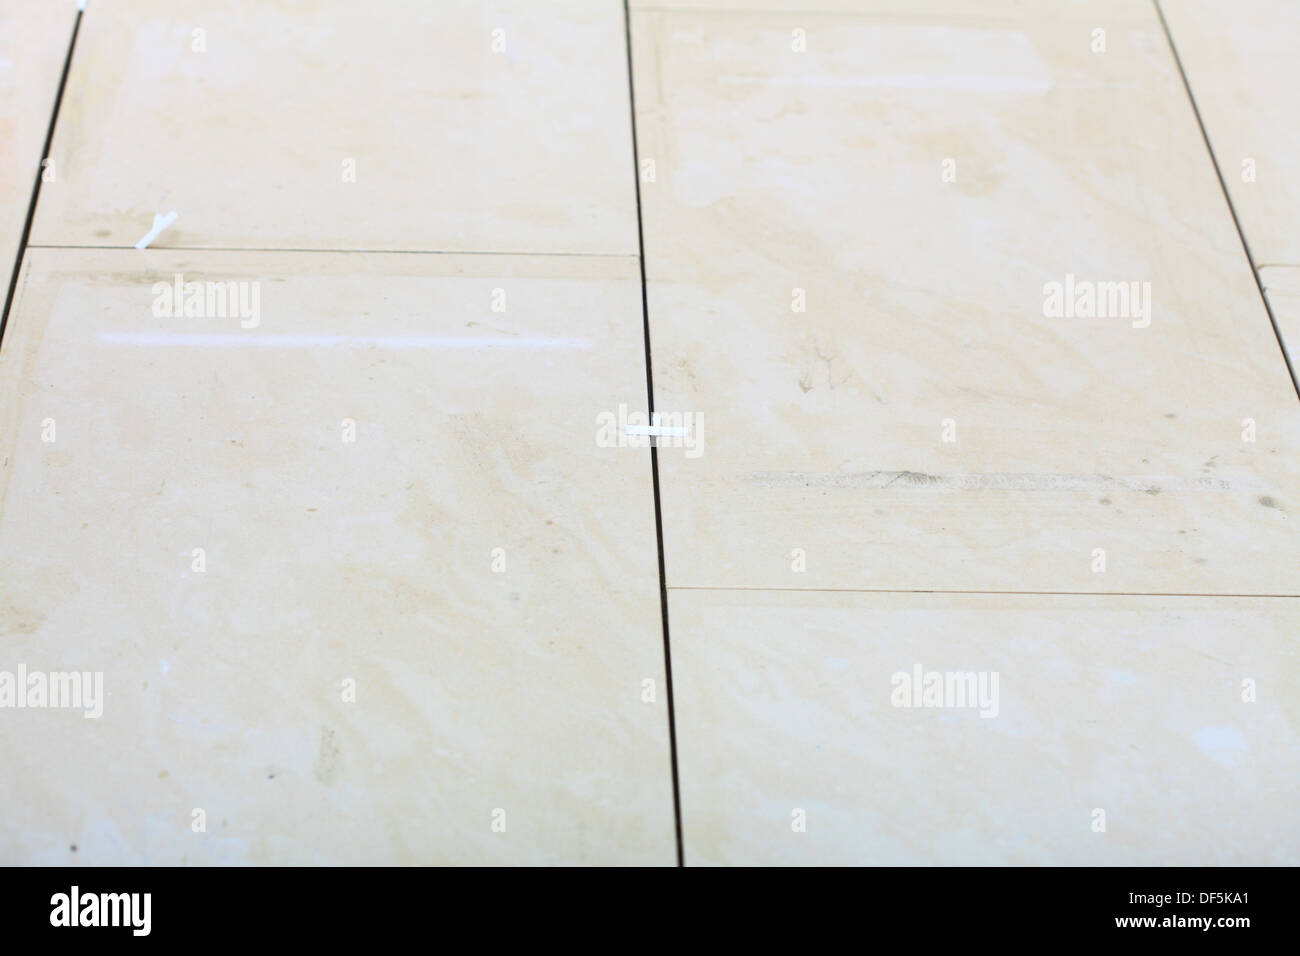 https www alamy com improvement renovation at home unfinished ceramic tiles with spacers image60975881 html